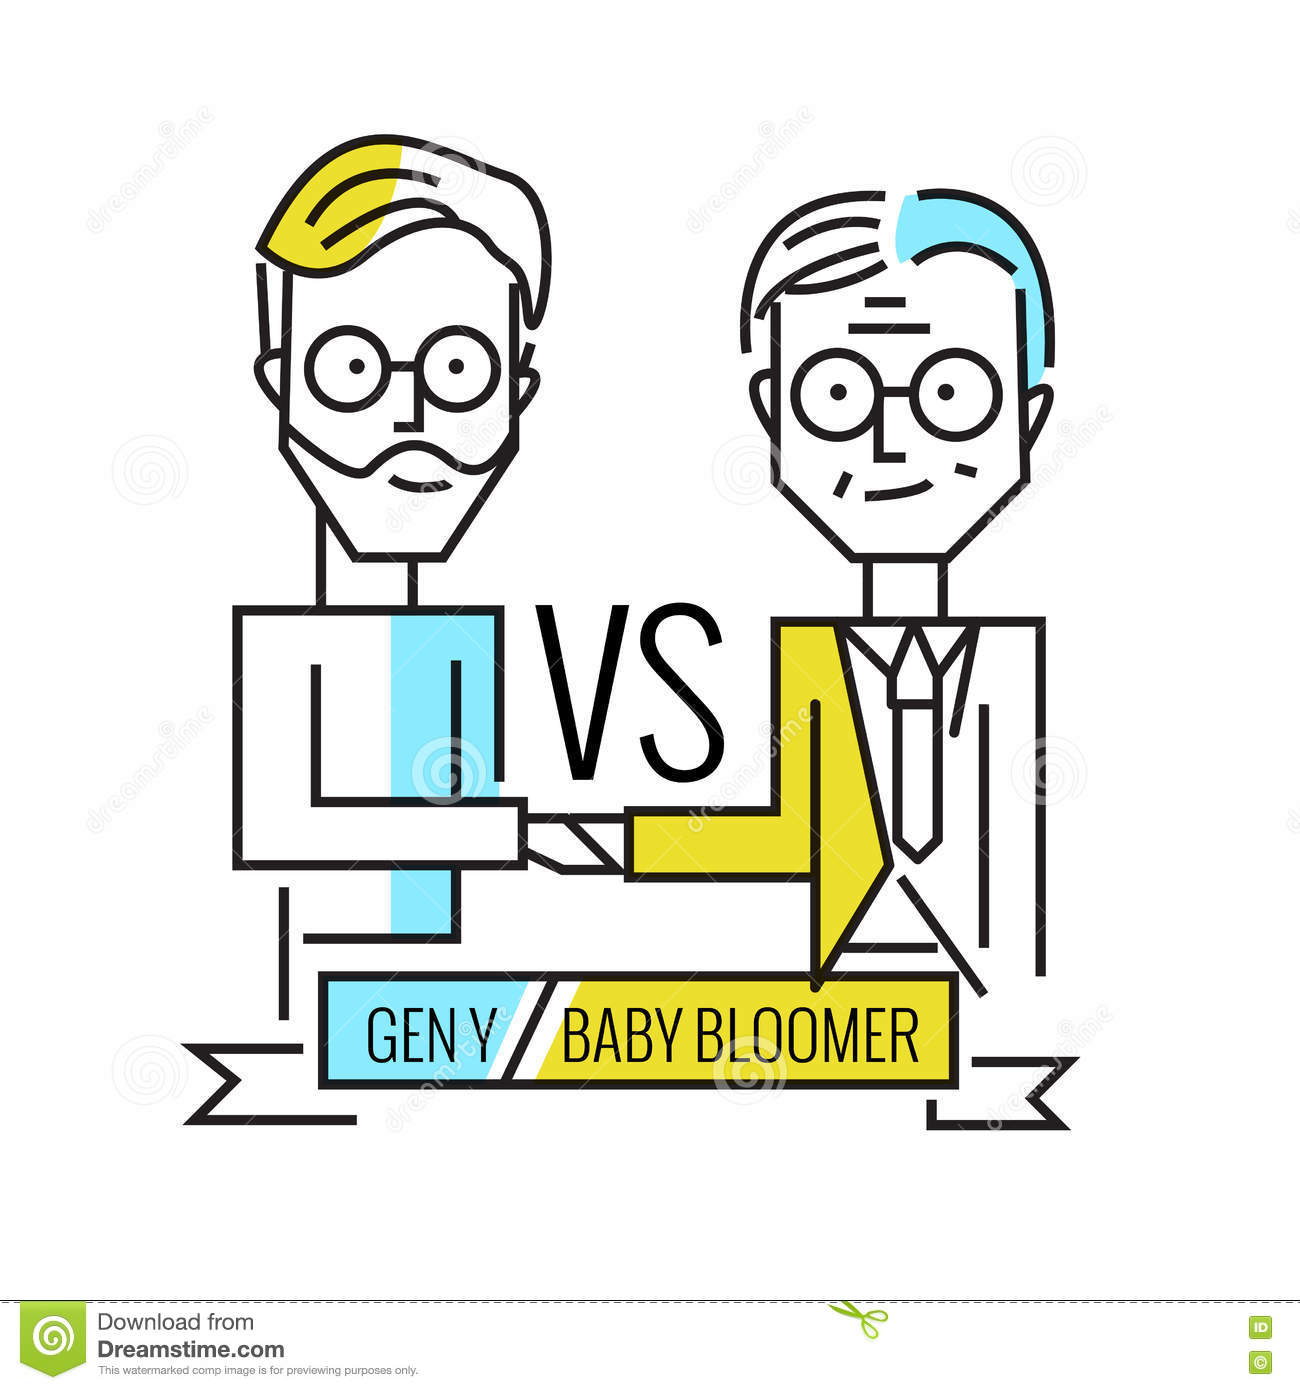 baby boomers vs generation y business human resource and teamwork baby boomers vs generation y business human resource and teamwork